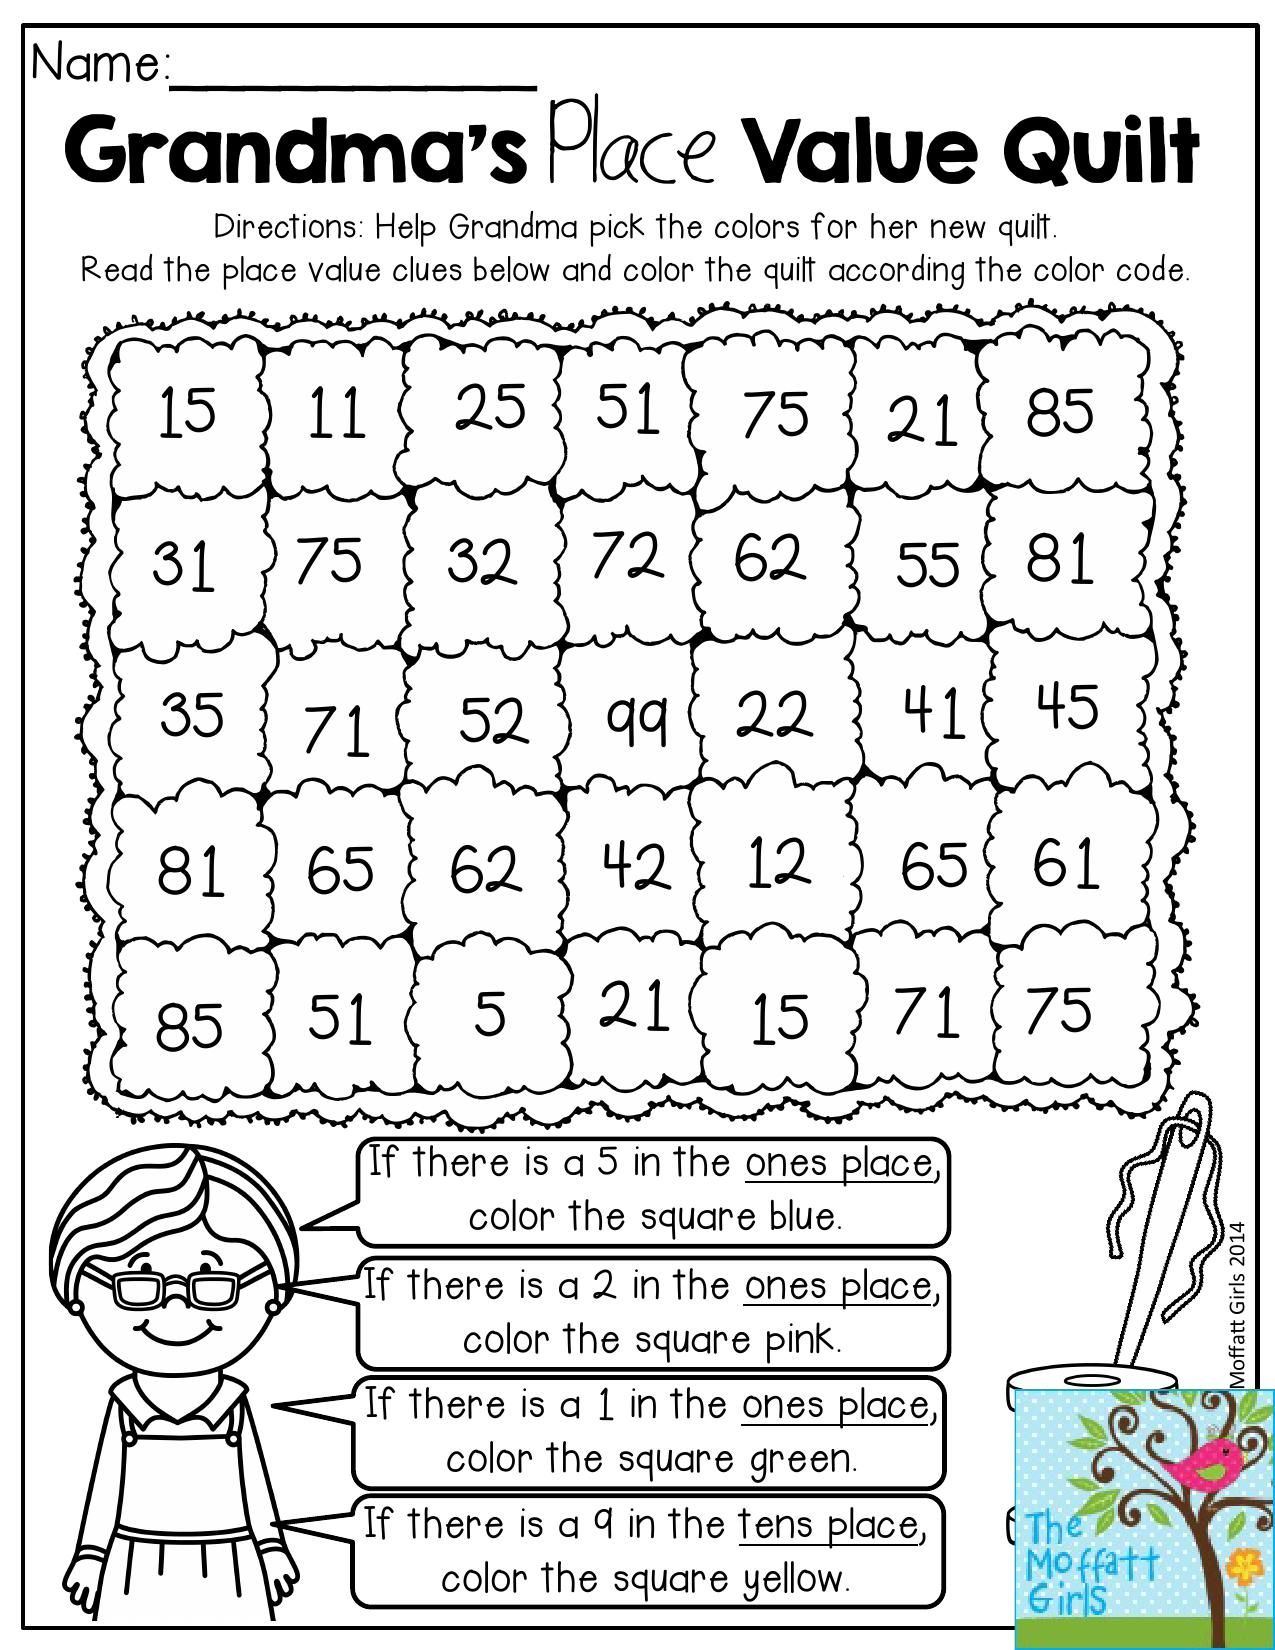 Place Value FREEBIES from Games 4 Learning This set contains 4 – 2nd Grade Math Place Value Worksheets